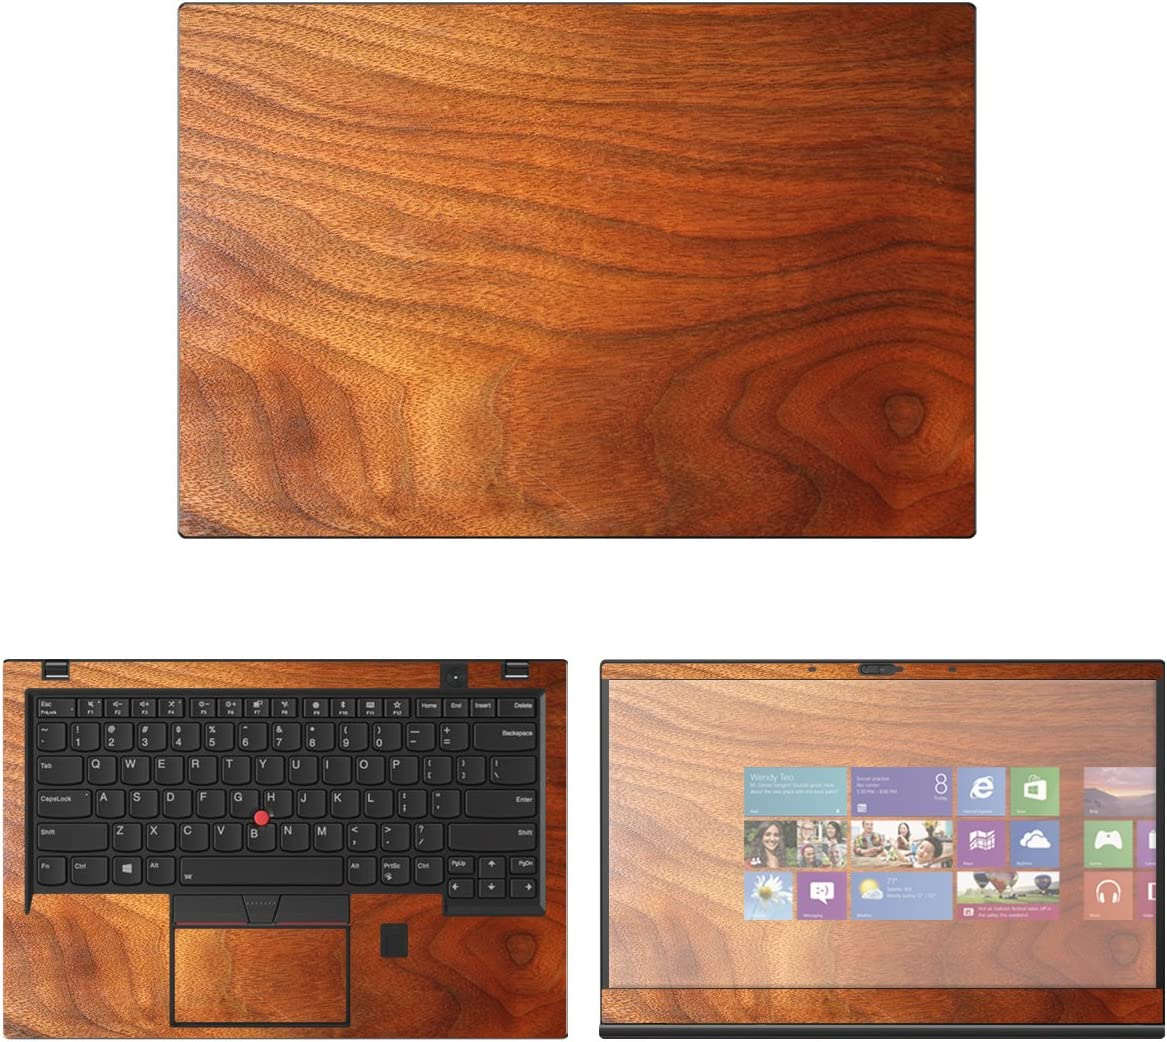 Decalrus - Protective Decal Wood Skin Sticker for Lenovo ThinkPad X1 Carbon (6th Gen.) (14